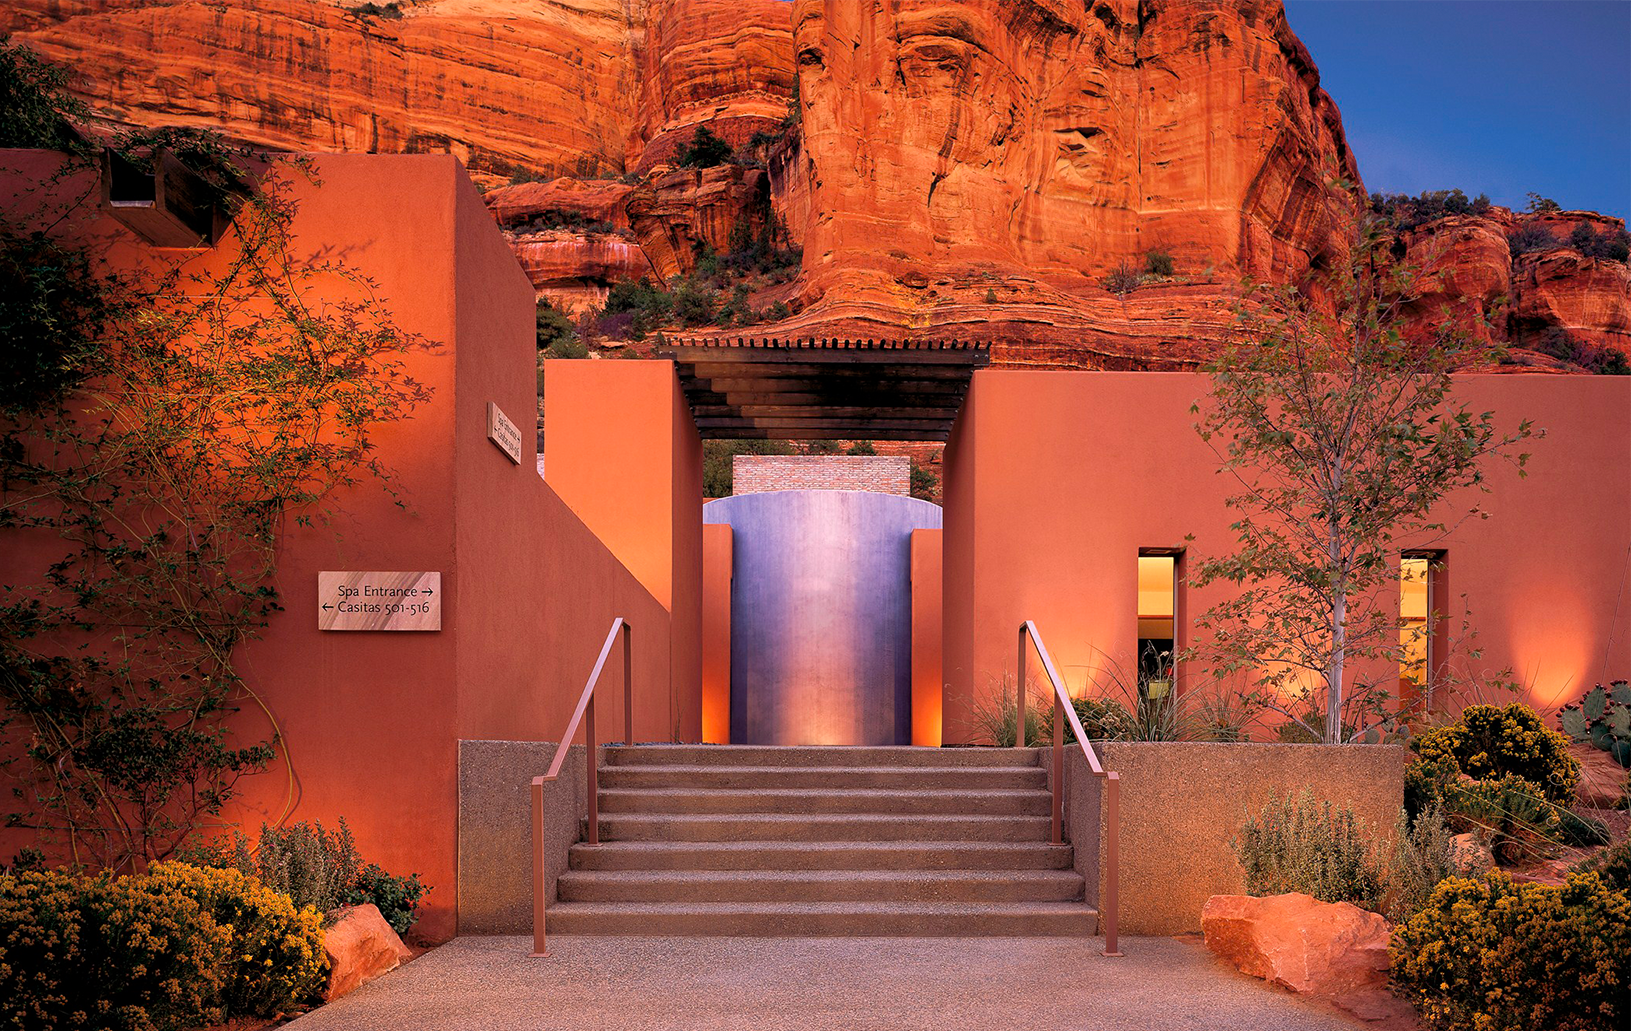 9 Best Luxury Only Hotels Mii Amo Sedona Az Tucked Away In A Canyon Beneath The Red Rocks This World Renowned Spa Offers Journey Experiences